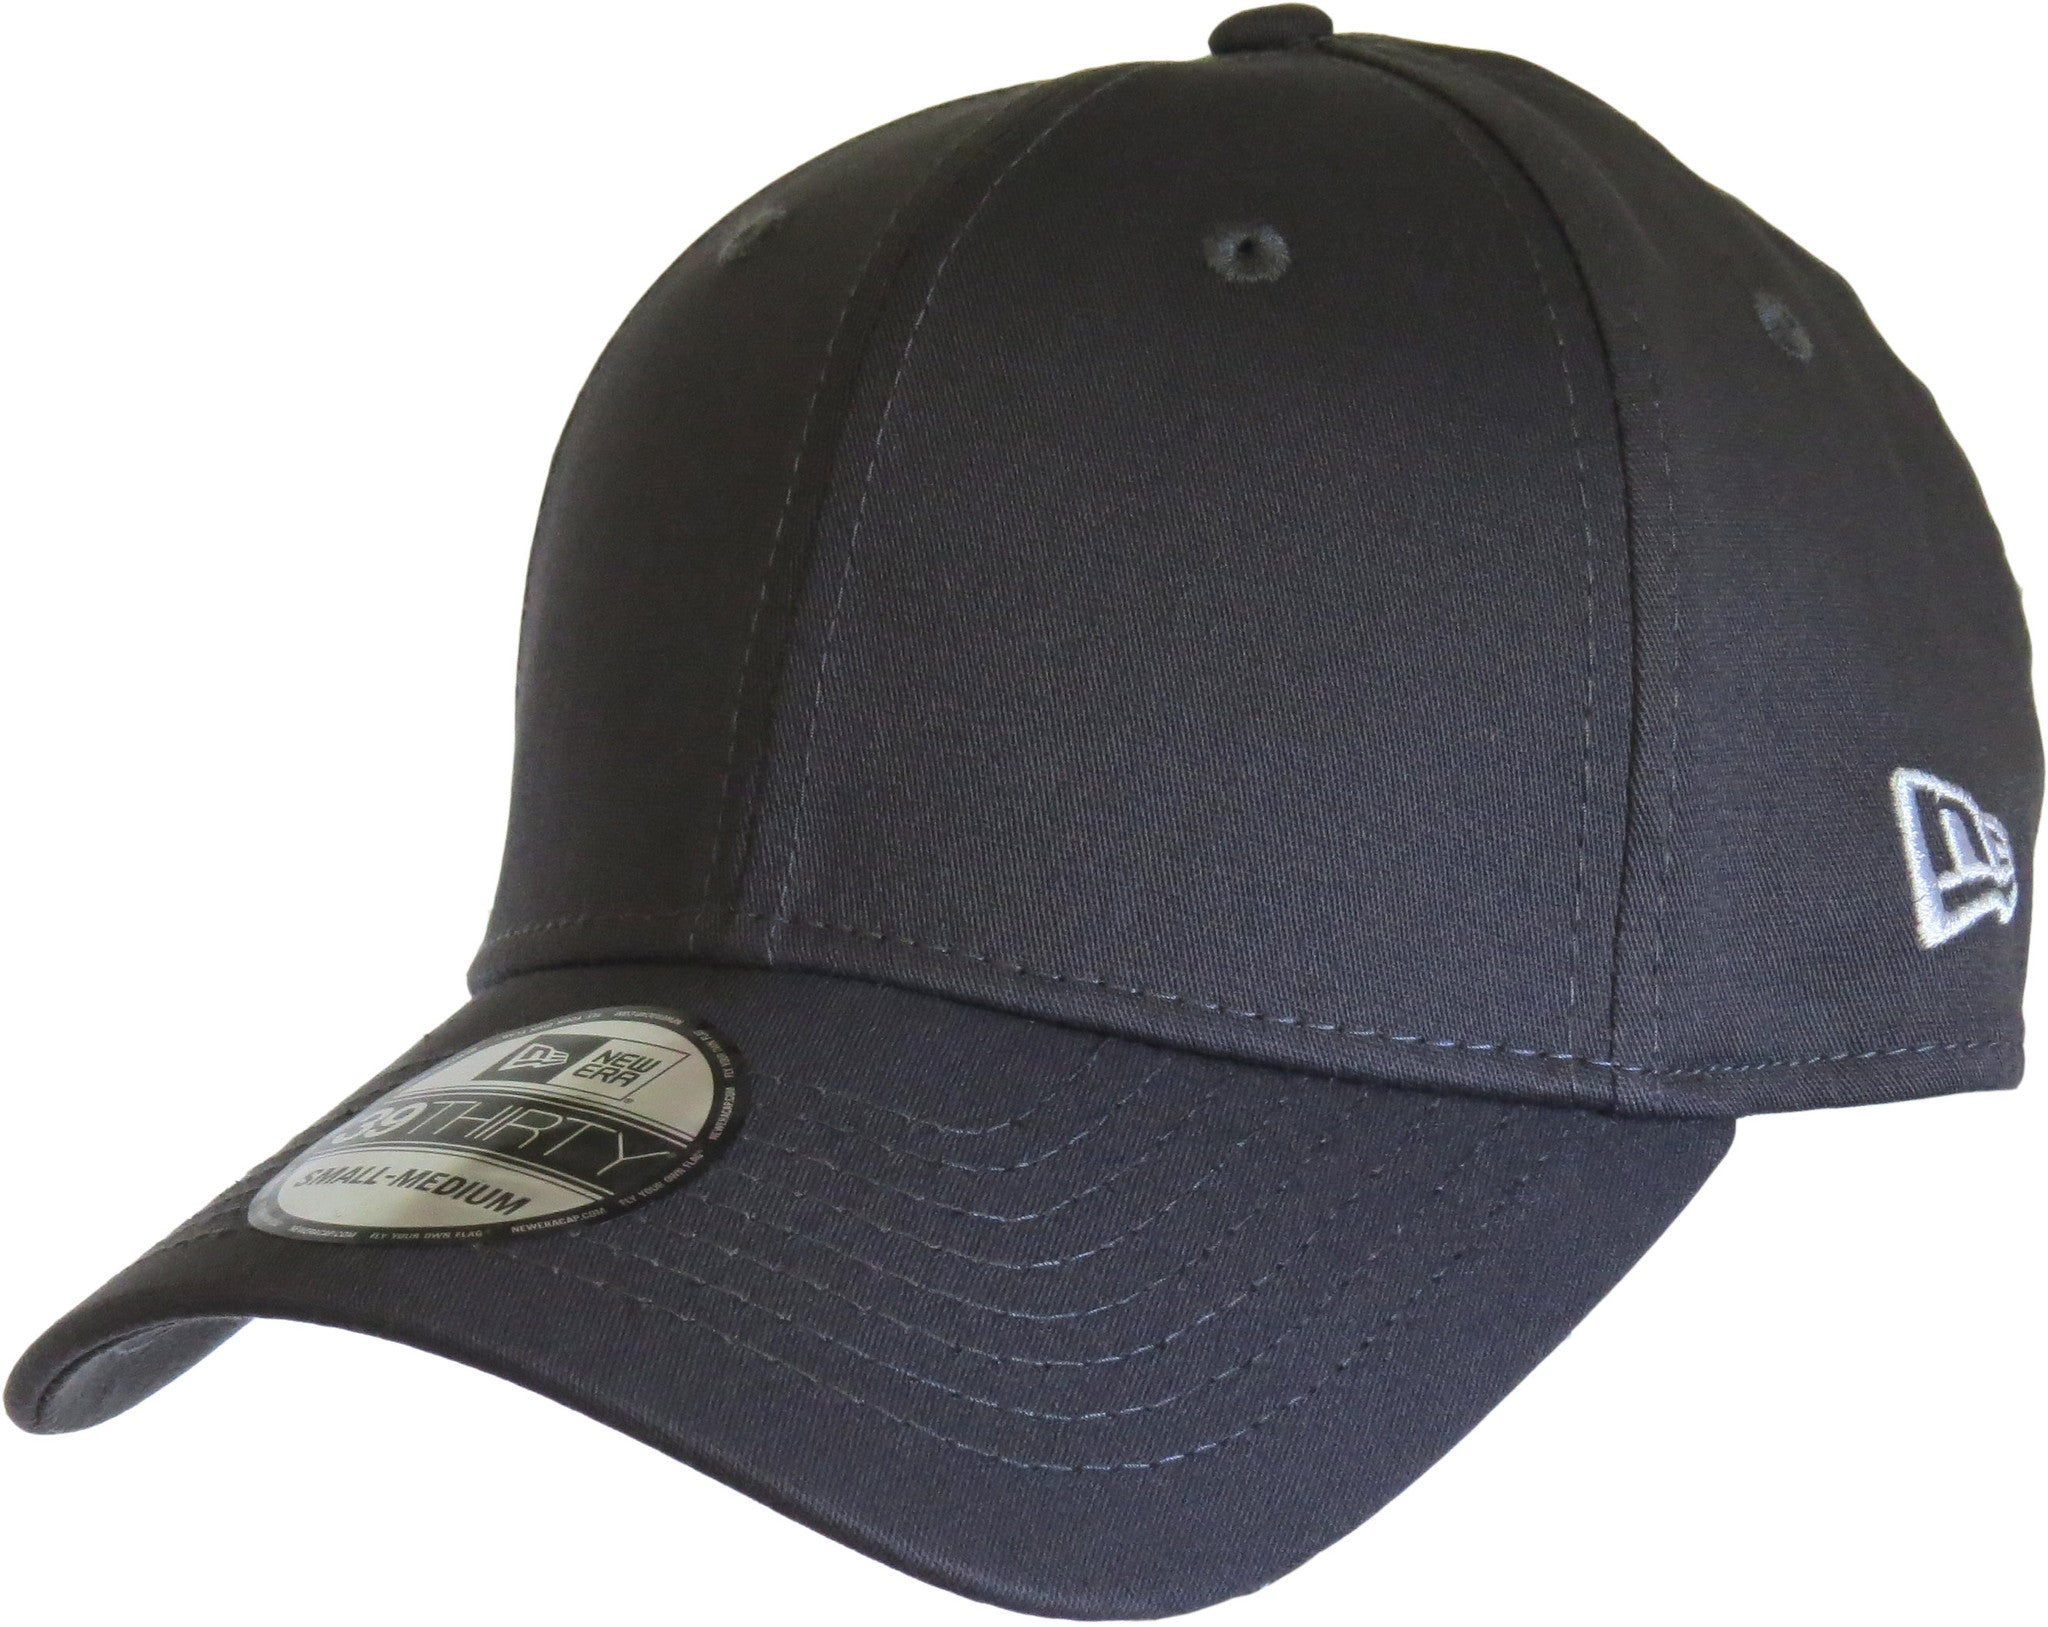 427c9355d New Era 3930 Classic Curved Peak Stretch Fit Plain Graphite Baseball Cap